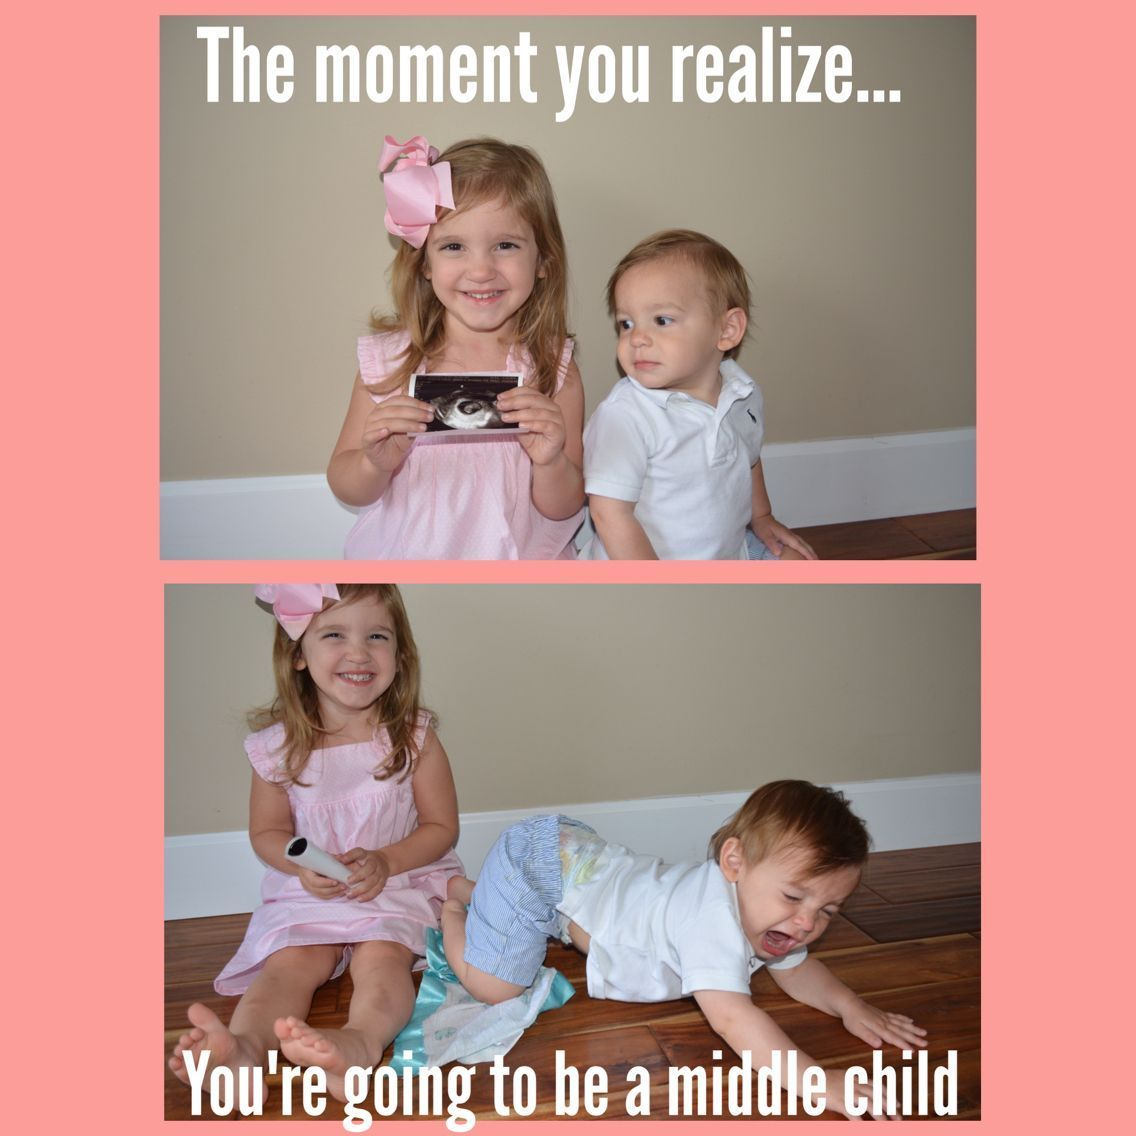 Middle child announcement. 3rd baby :) #middlechildhumor Middle child announcement. 3rd baby :) #middlechildhumor Middle child announcement. 3rd baby :) #middlechildhumor Middle child announcement. 3rd baby :) #middlechildhumor